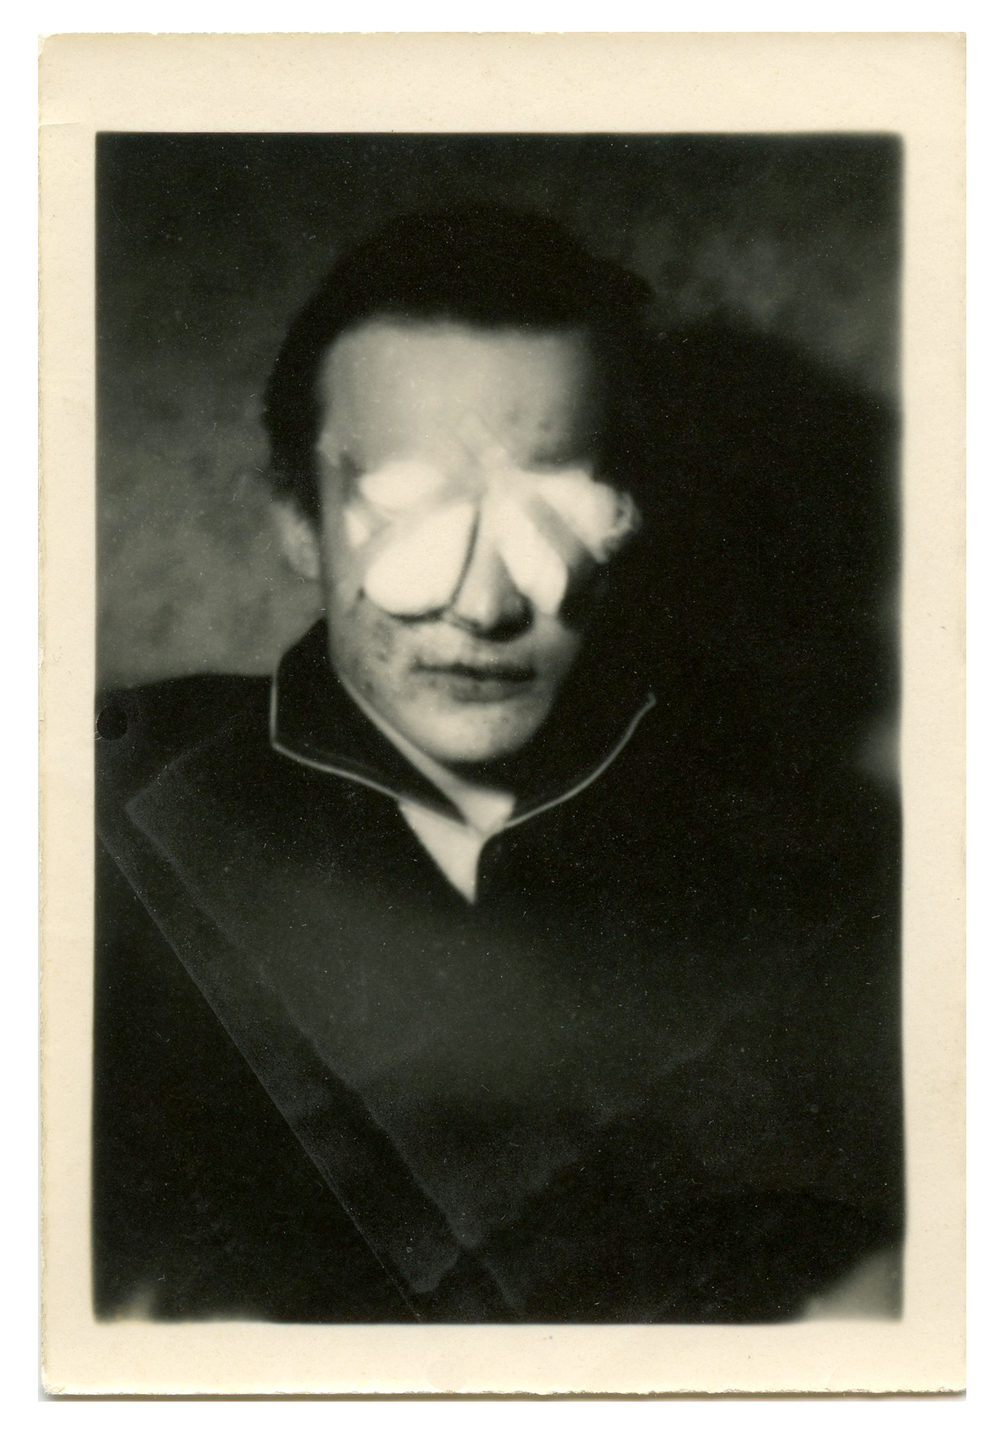 Strange snapshot of a man with bandaged eyes.